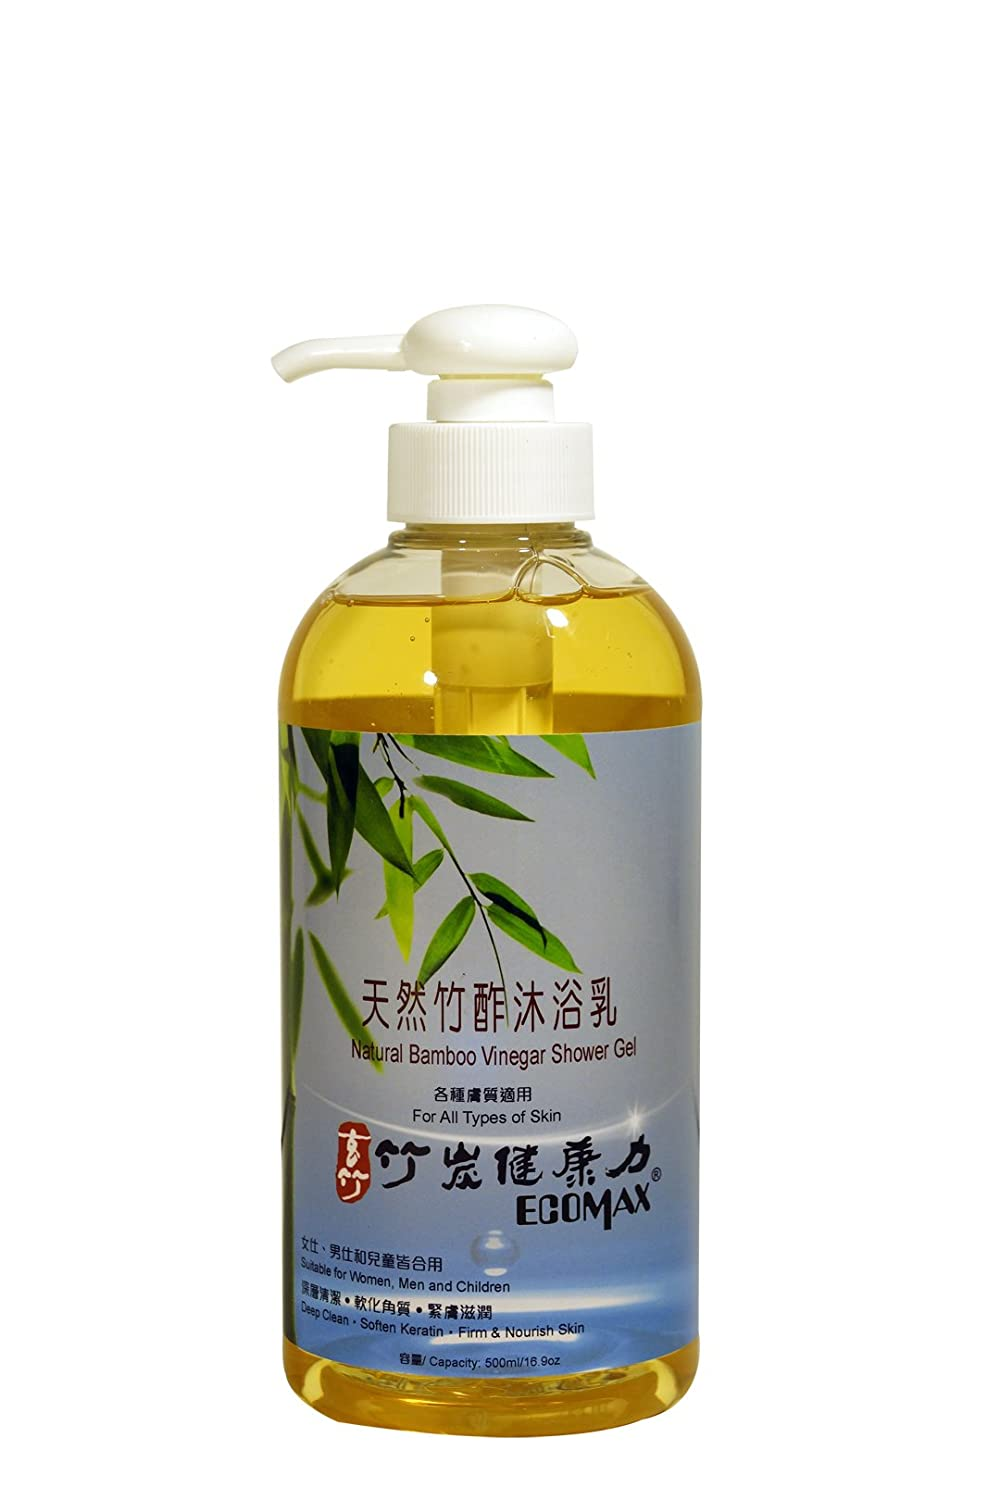 Natural Shower Gel Beauty Soap Body Wash Lotion With Bamboo Vinegar Cleanse Body Deeply,Special for Sensitive Skin,Rough Skin,Keratosis Pilaris,Skin Bump,Body Odor,Keratin,16.9oz,Taiwan